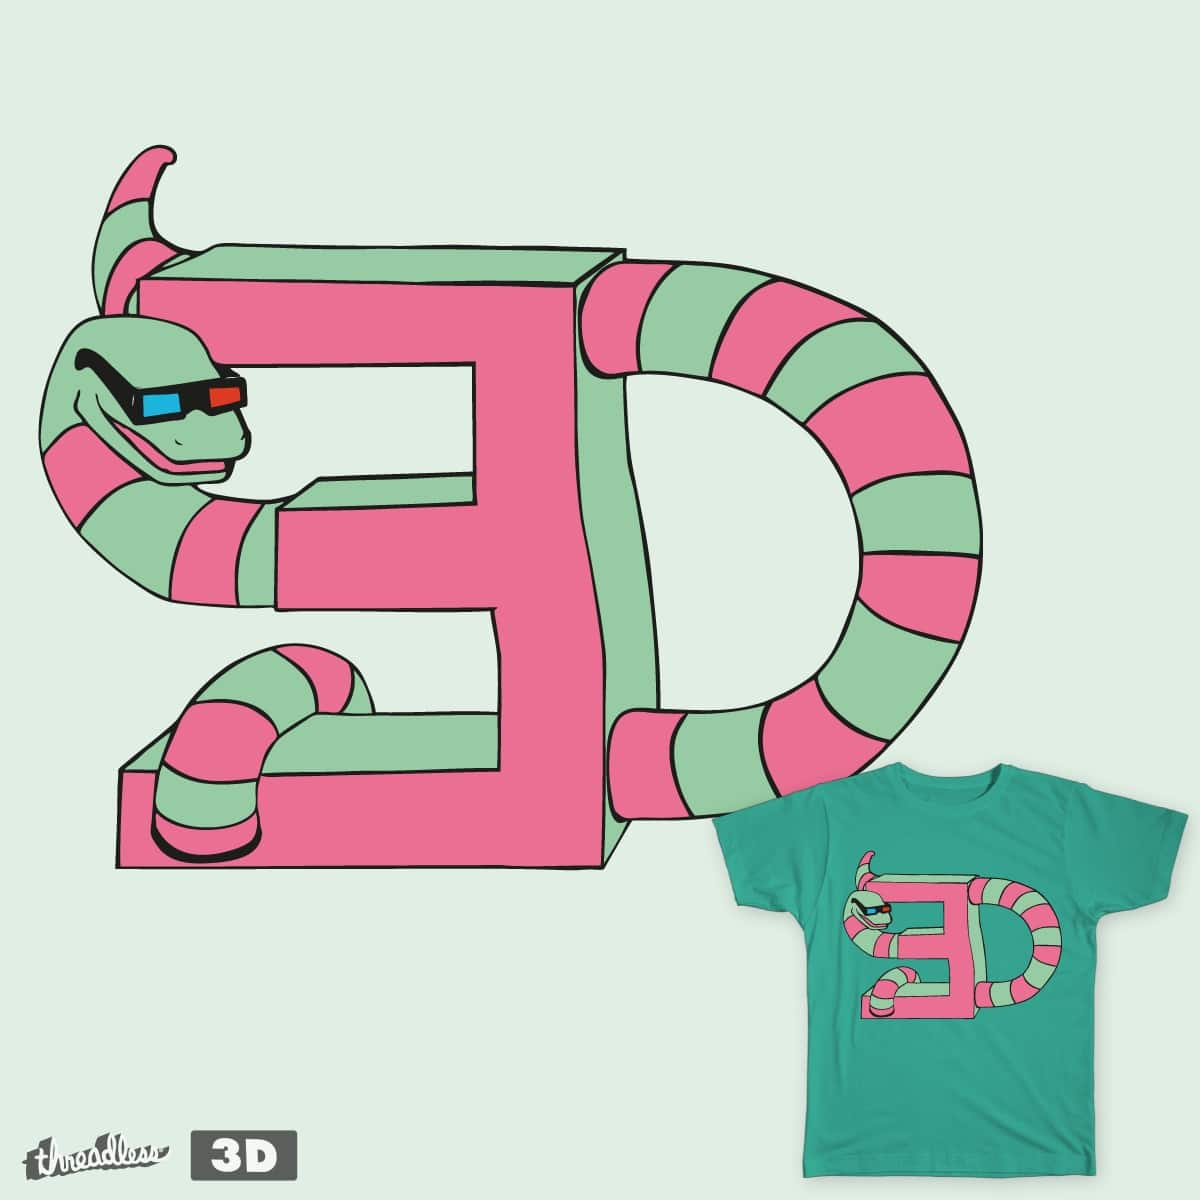 Snake 3D by fabio.mauro.7 on Threadless